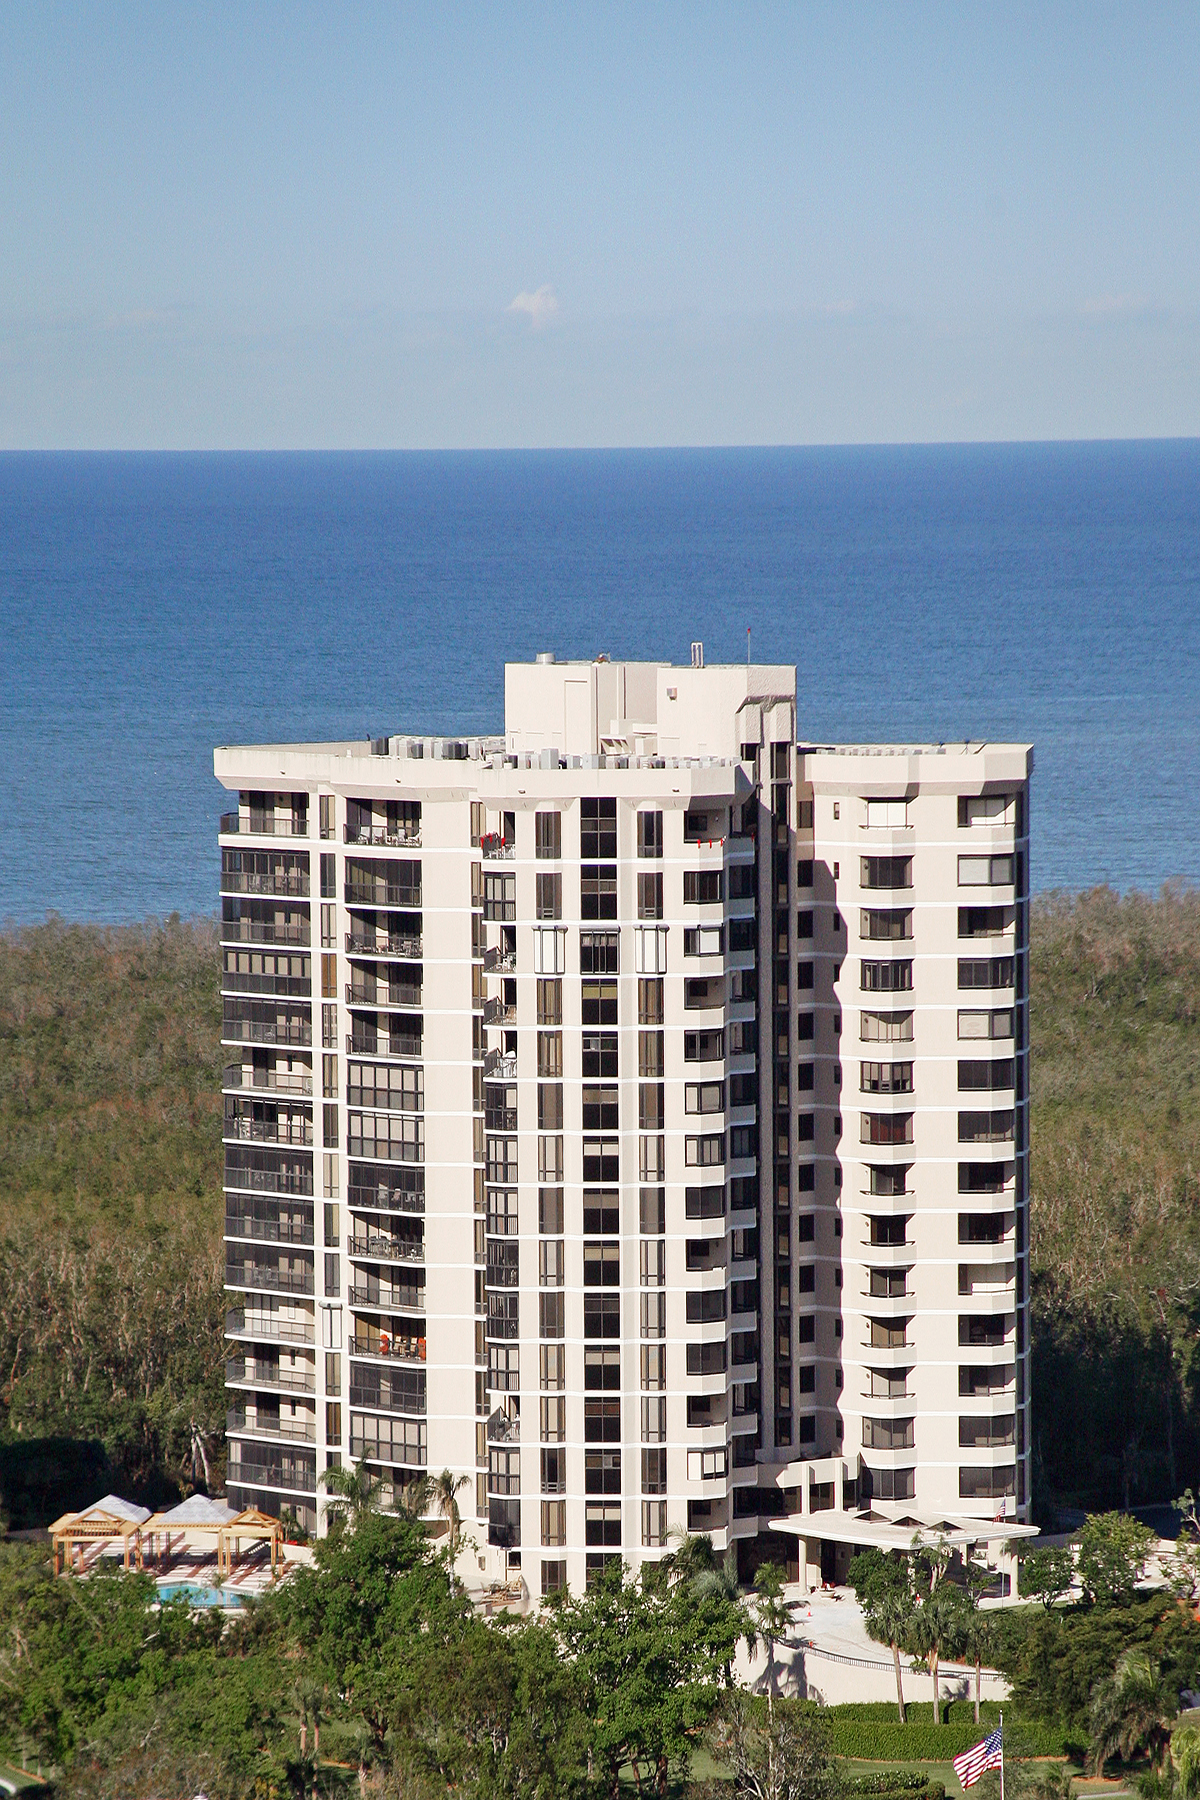 Condominium for Sale at PELICAN BAY - DORCHESTER 6075 Pelican Bay Blvd Unit PH-C Naples, Florida, 34108 United States